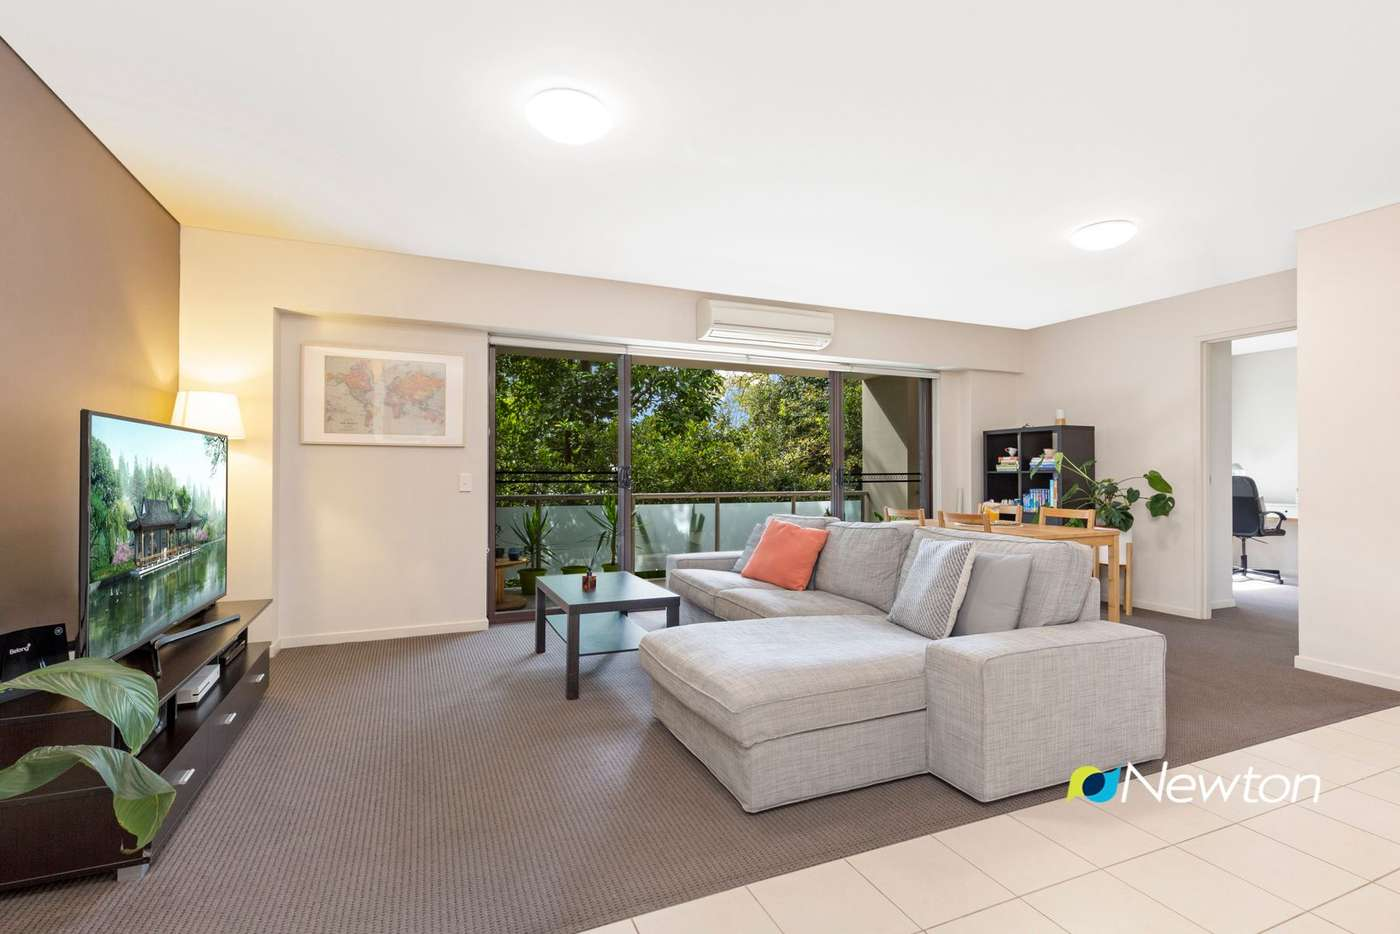 Main view of Homely apartment listing, 25/6-8 Banksia Road, Caringbah NSW 2229